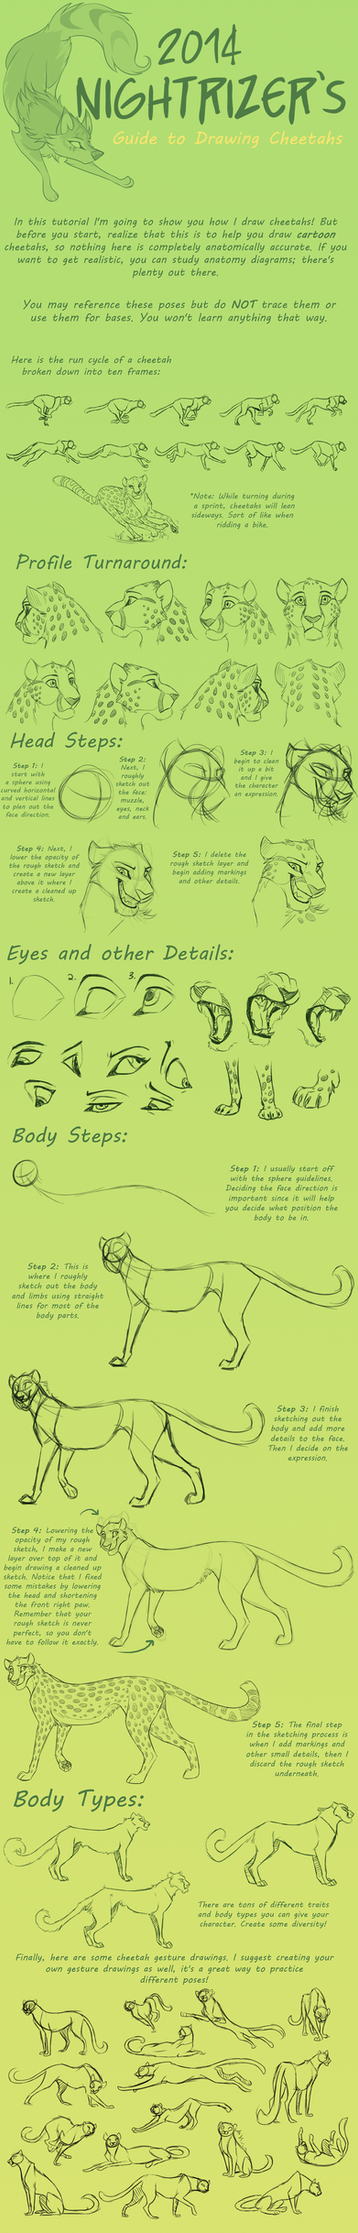 Guide to Drawing Cheetahs by Nightrizer